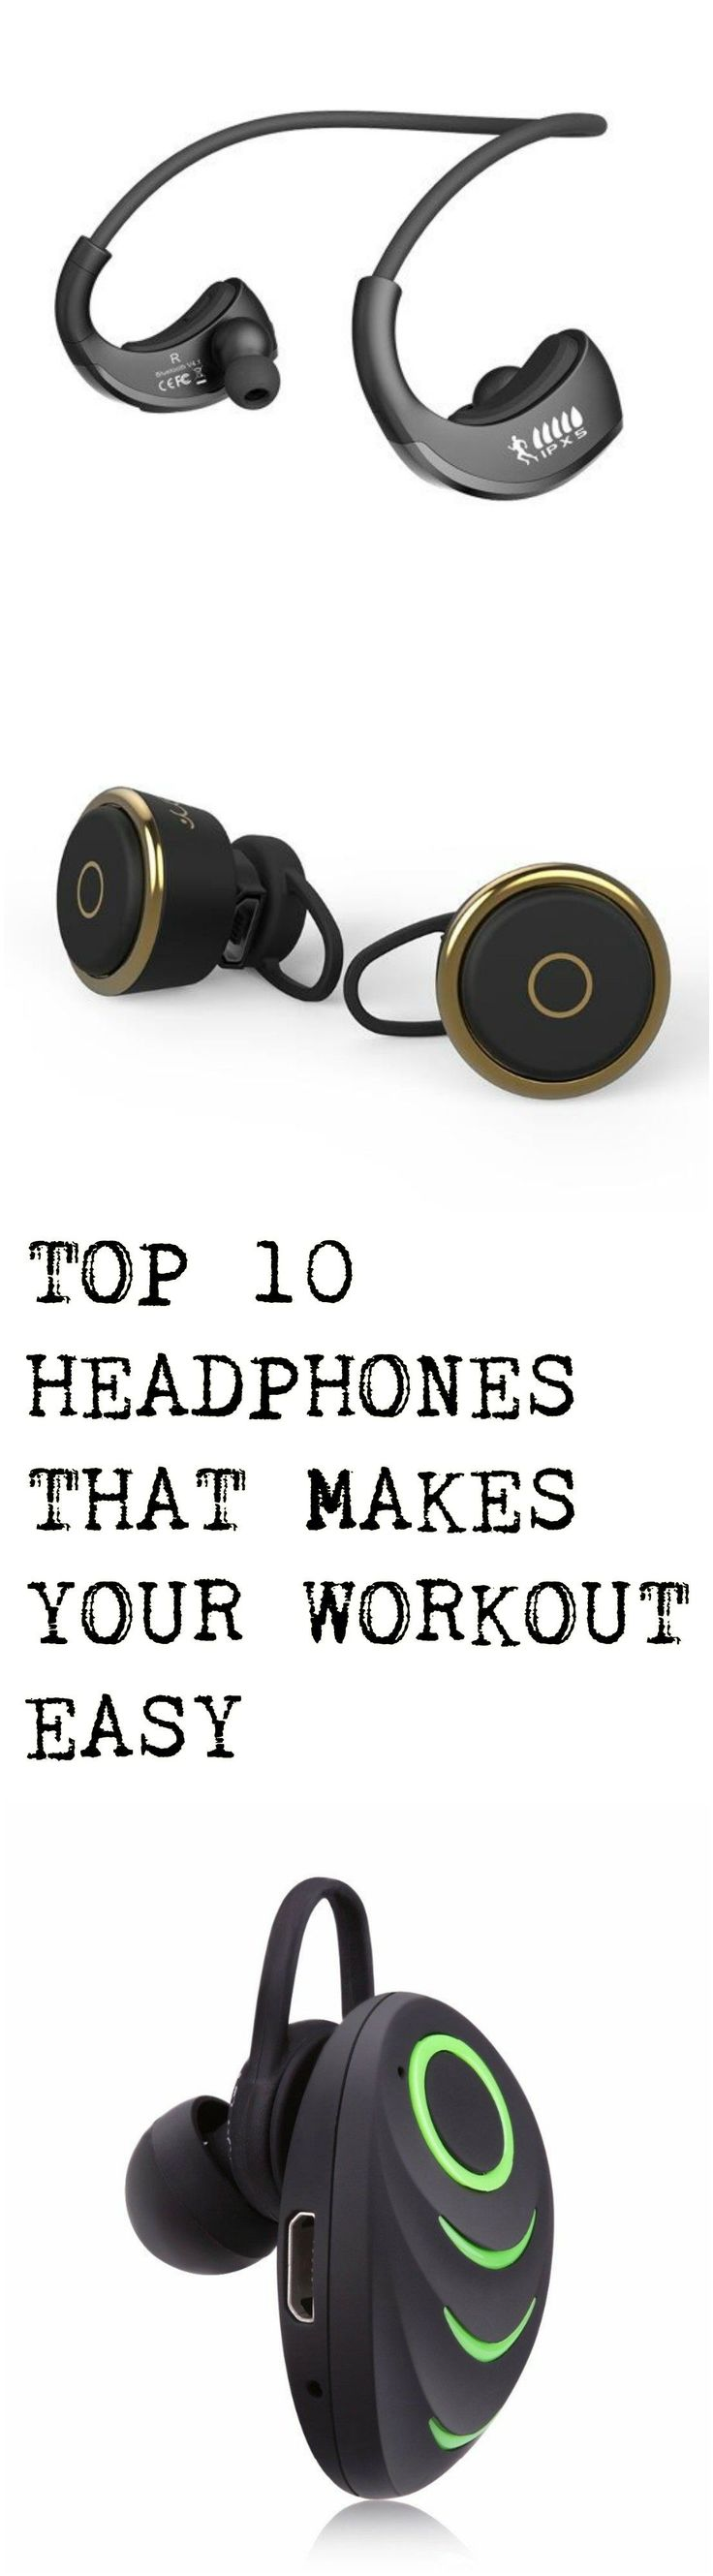 Top 10 Bluetooth Wireless Noise Cancelling Headphones. Great for workouts, gym and running without tangles! #Technology